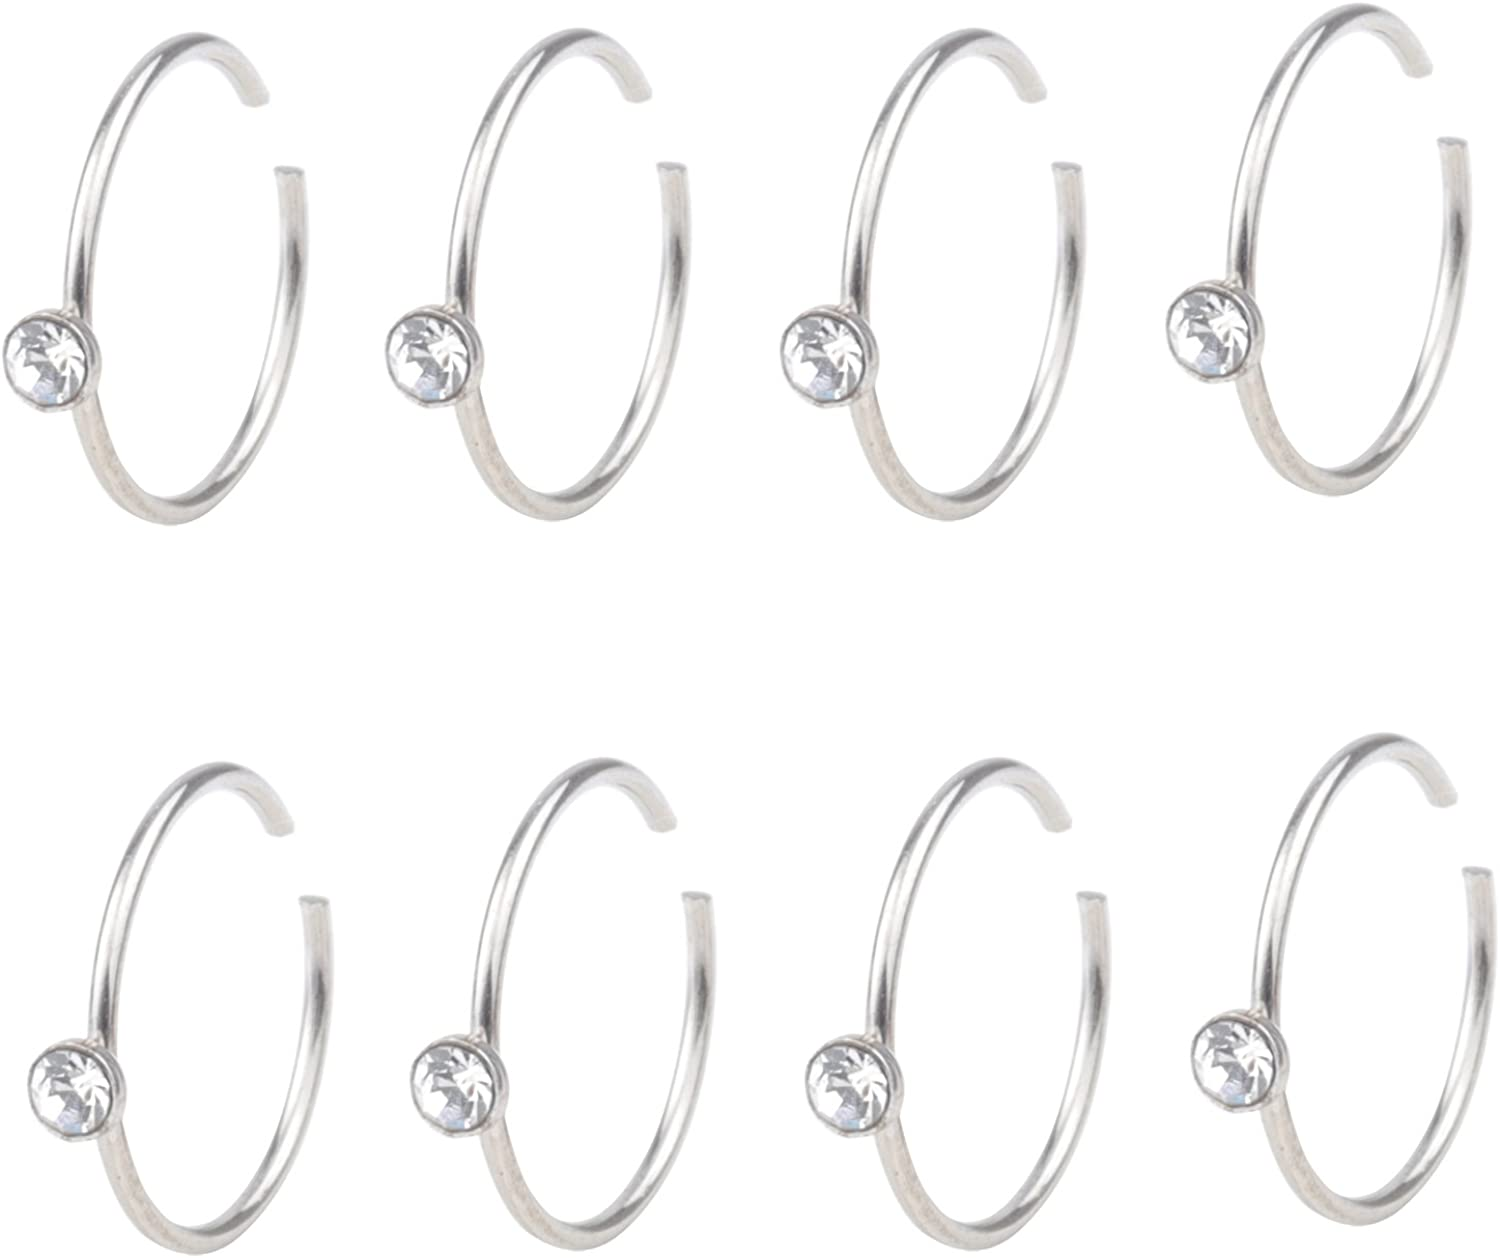 FY 20G 8pcs Surgical Steel Nose Hoop Clear Cubic Zirconia Ring Body Jewelry Piercing 10mm